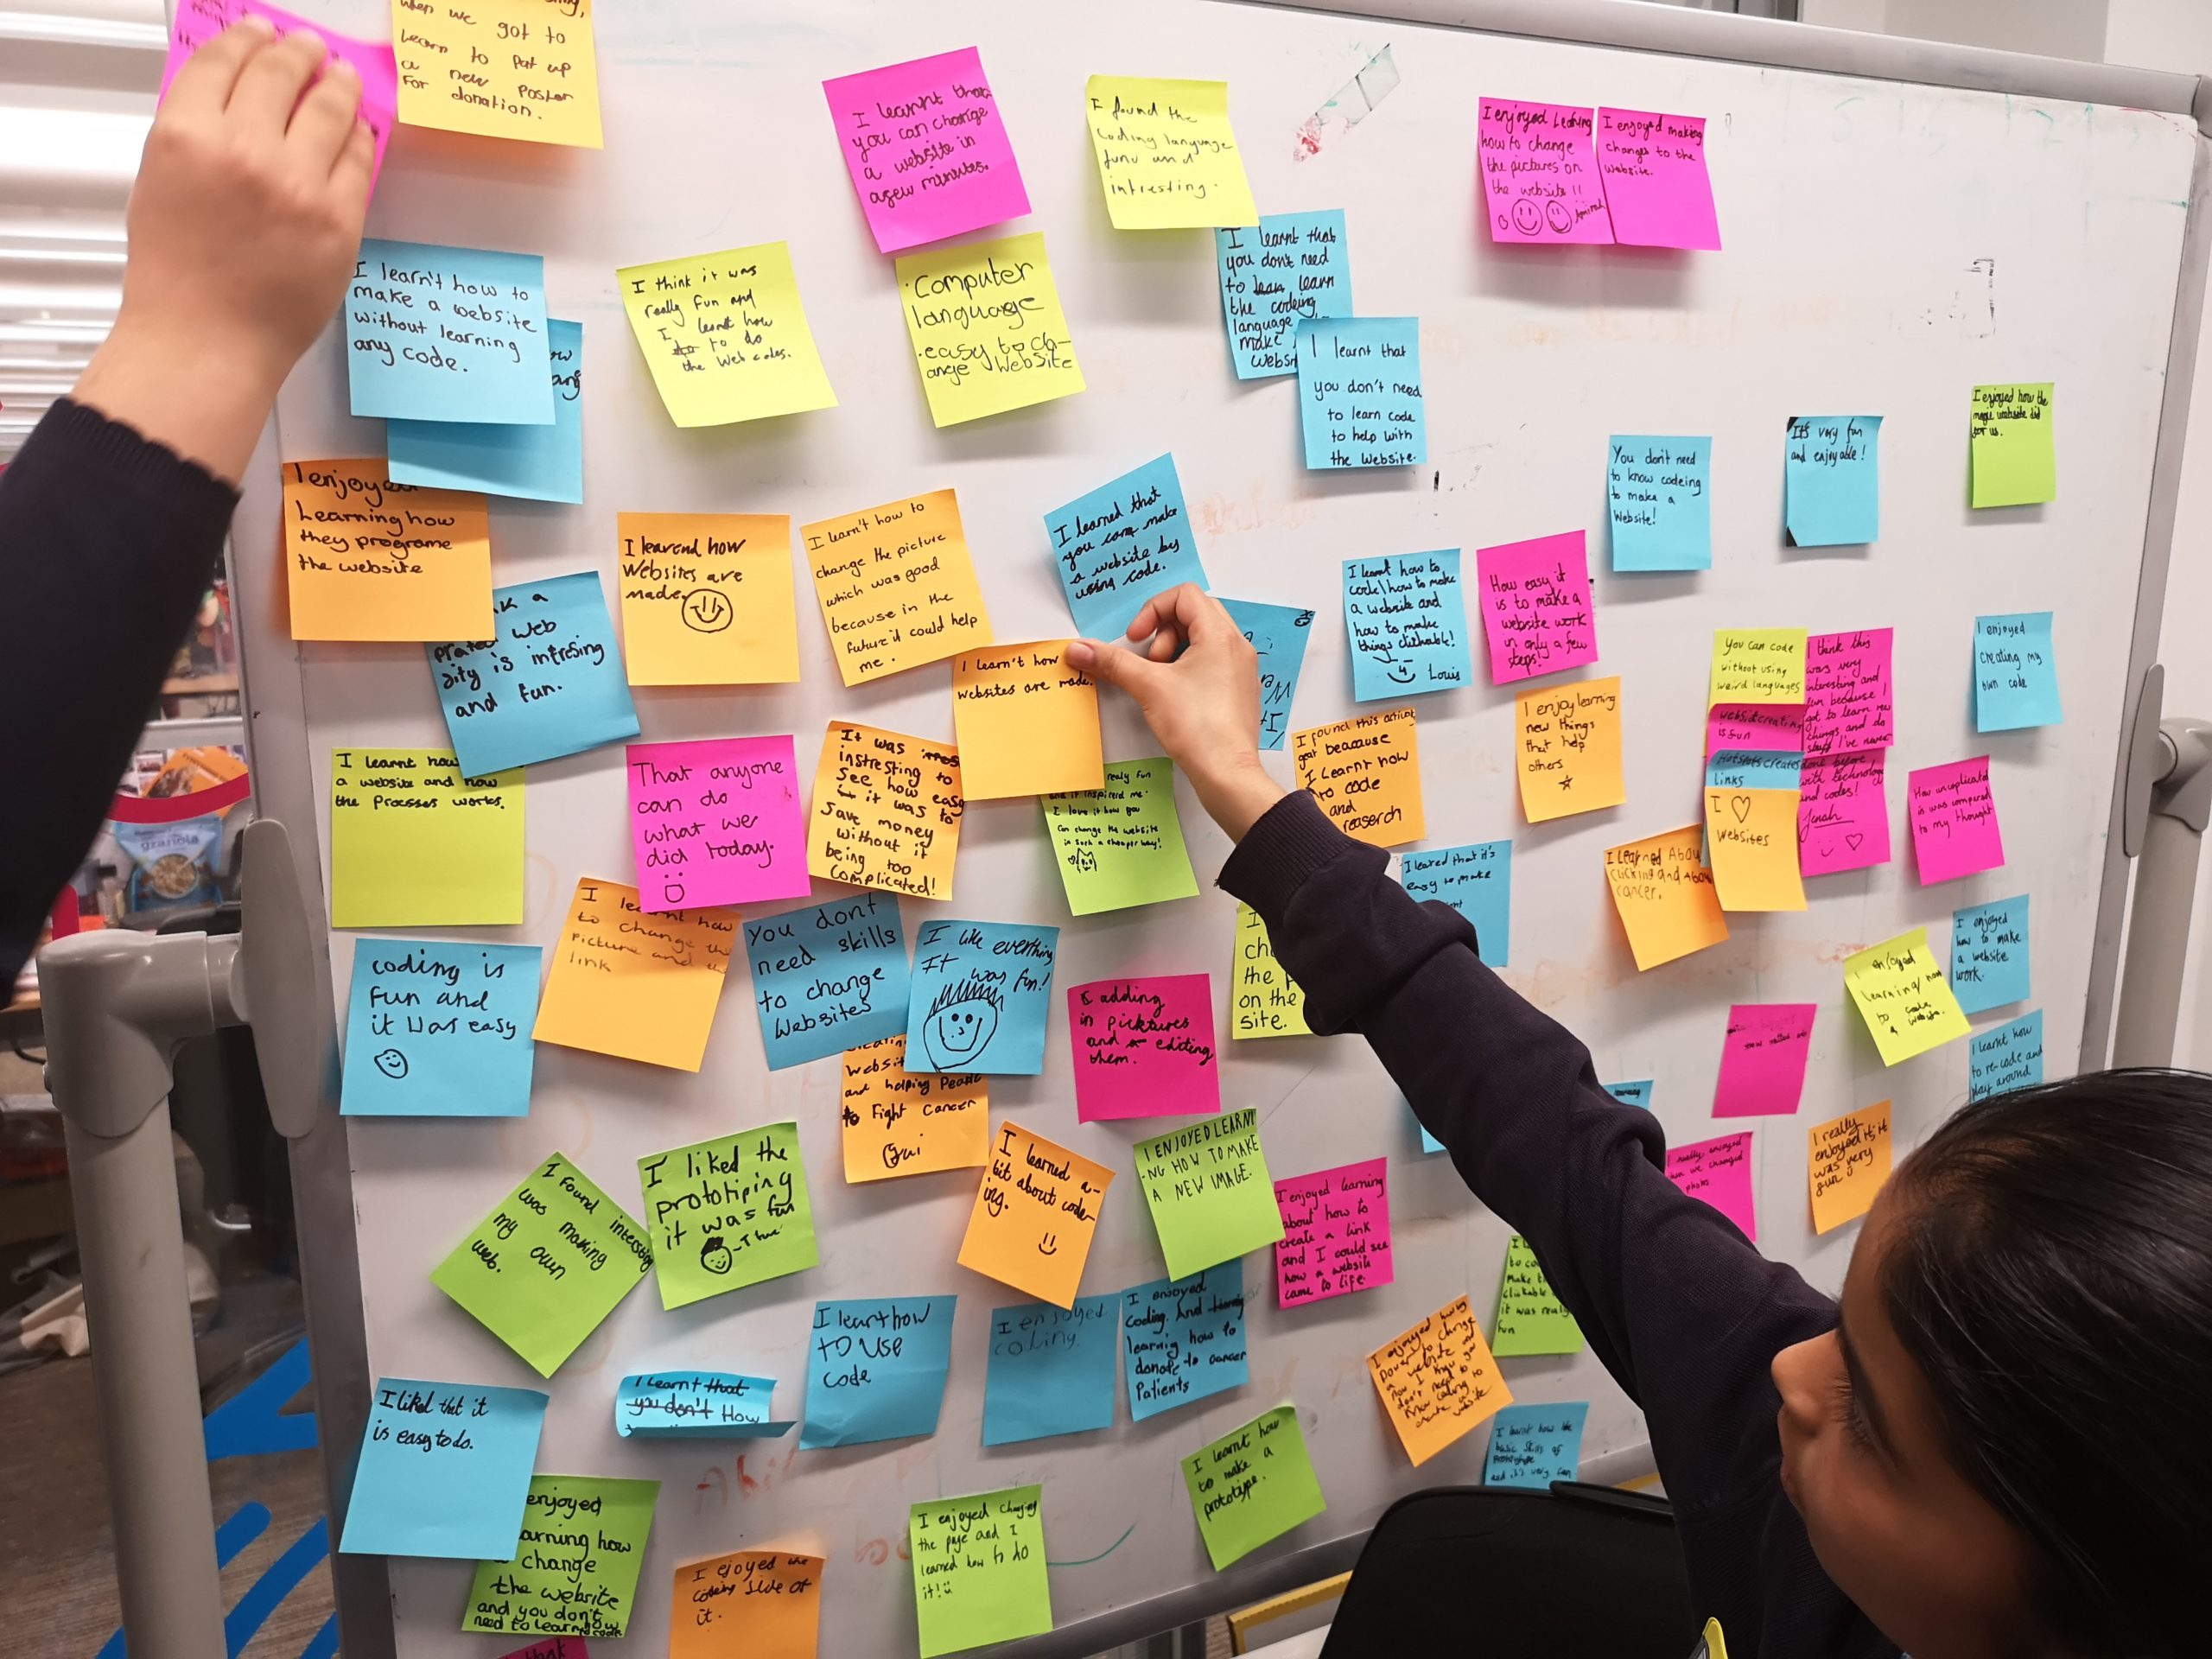 kids share post it ideas and feedback